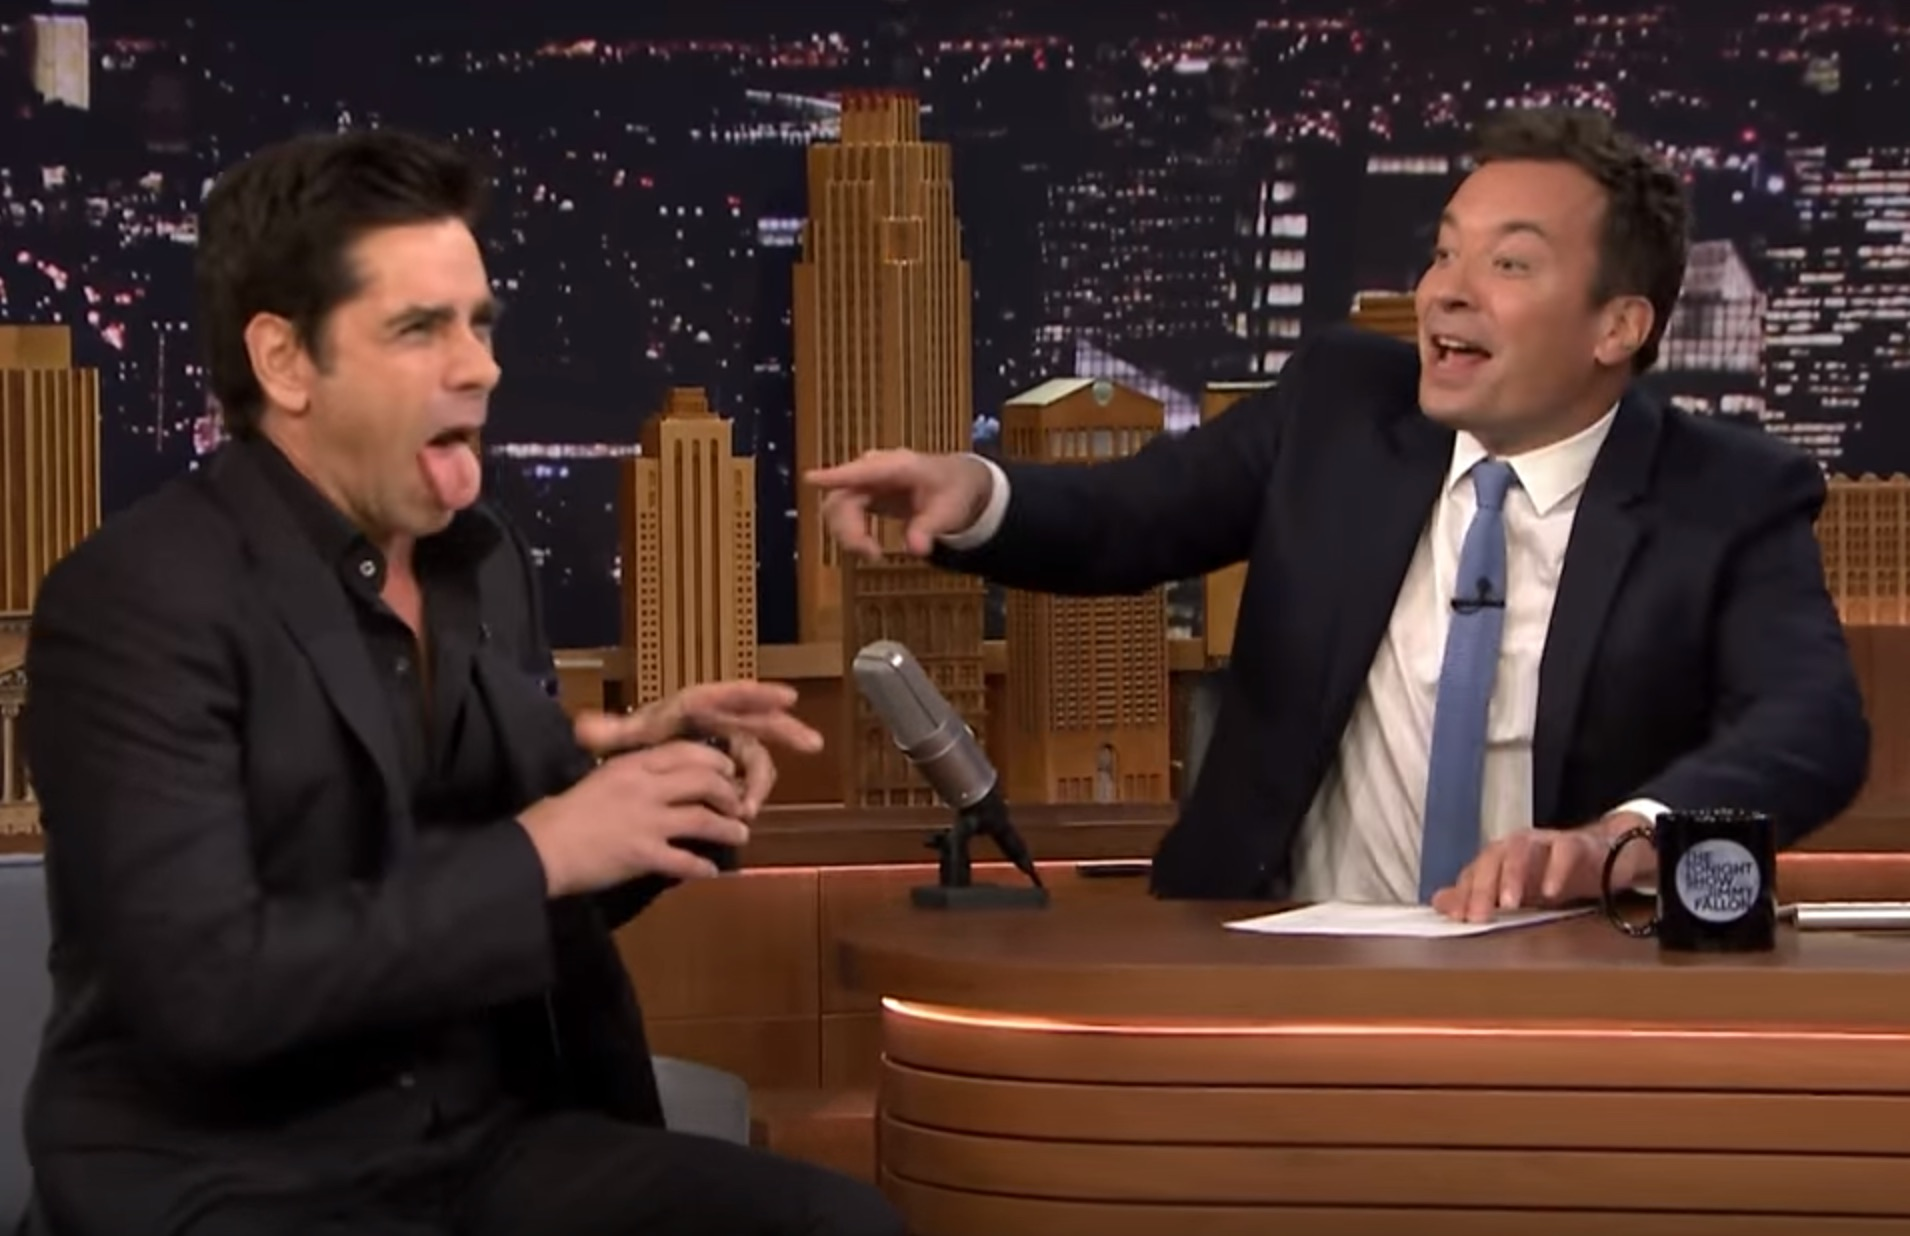 John Stamos and Jimmy Fallon just revealed the hilarious way they first met